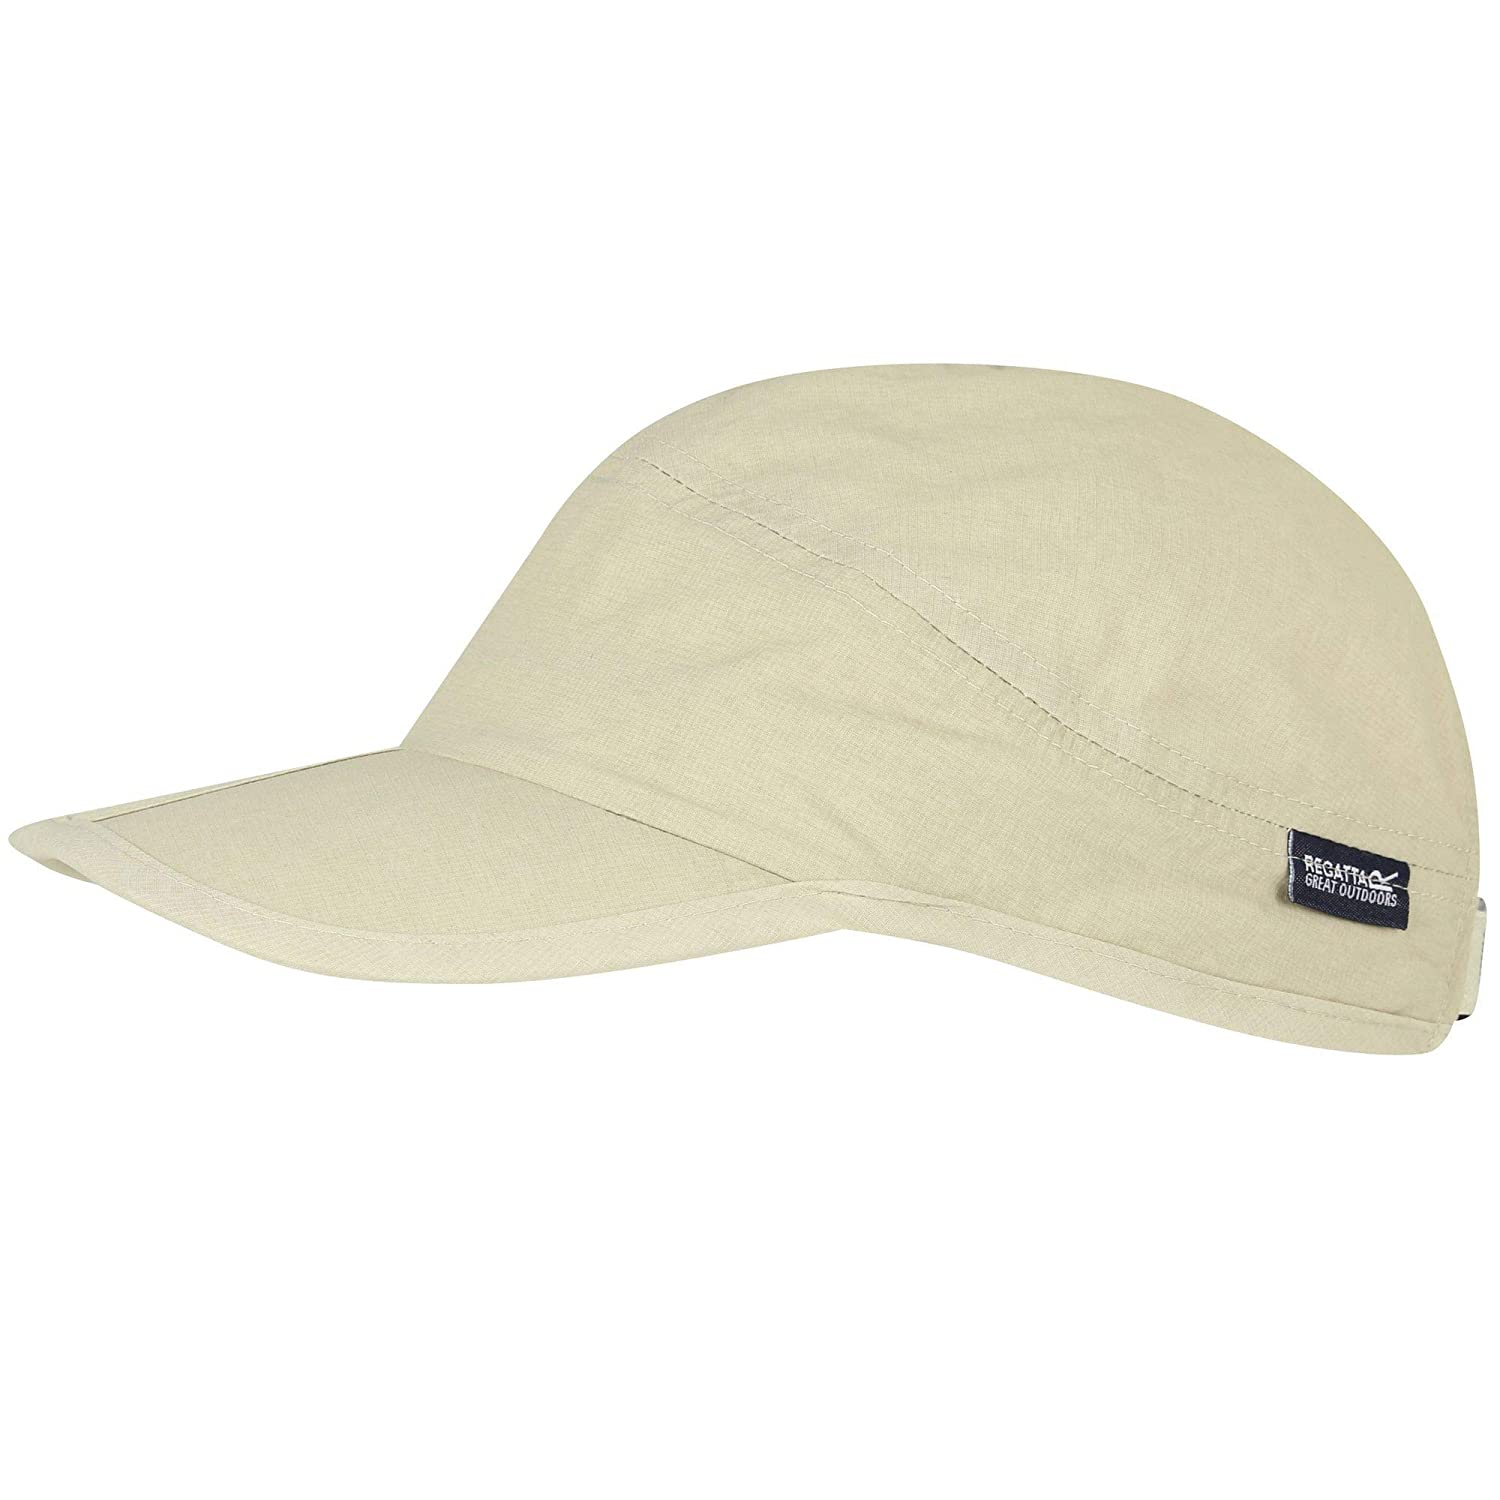 Regatta Folding Peak Baseball-Cap